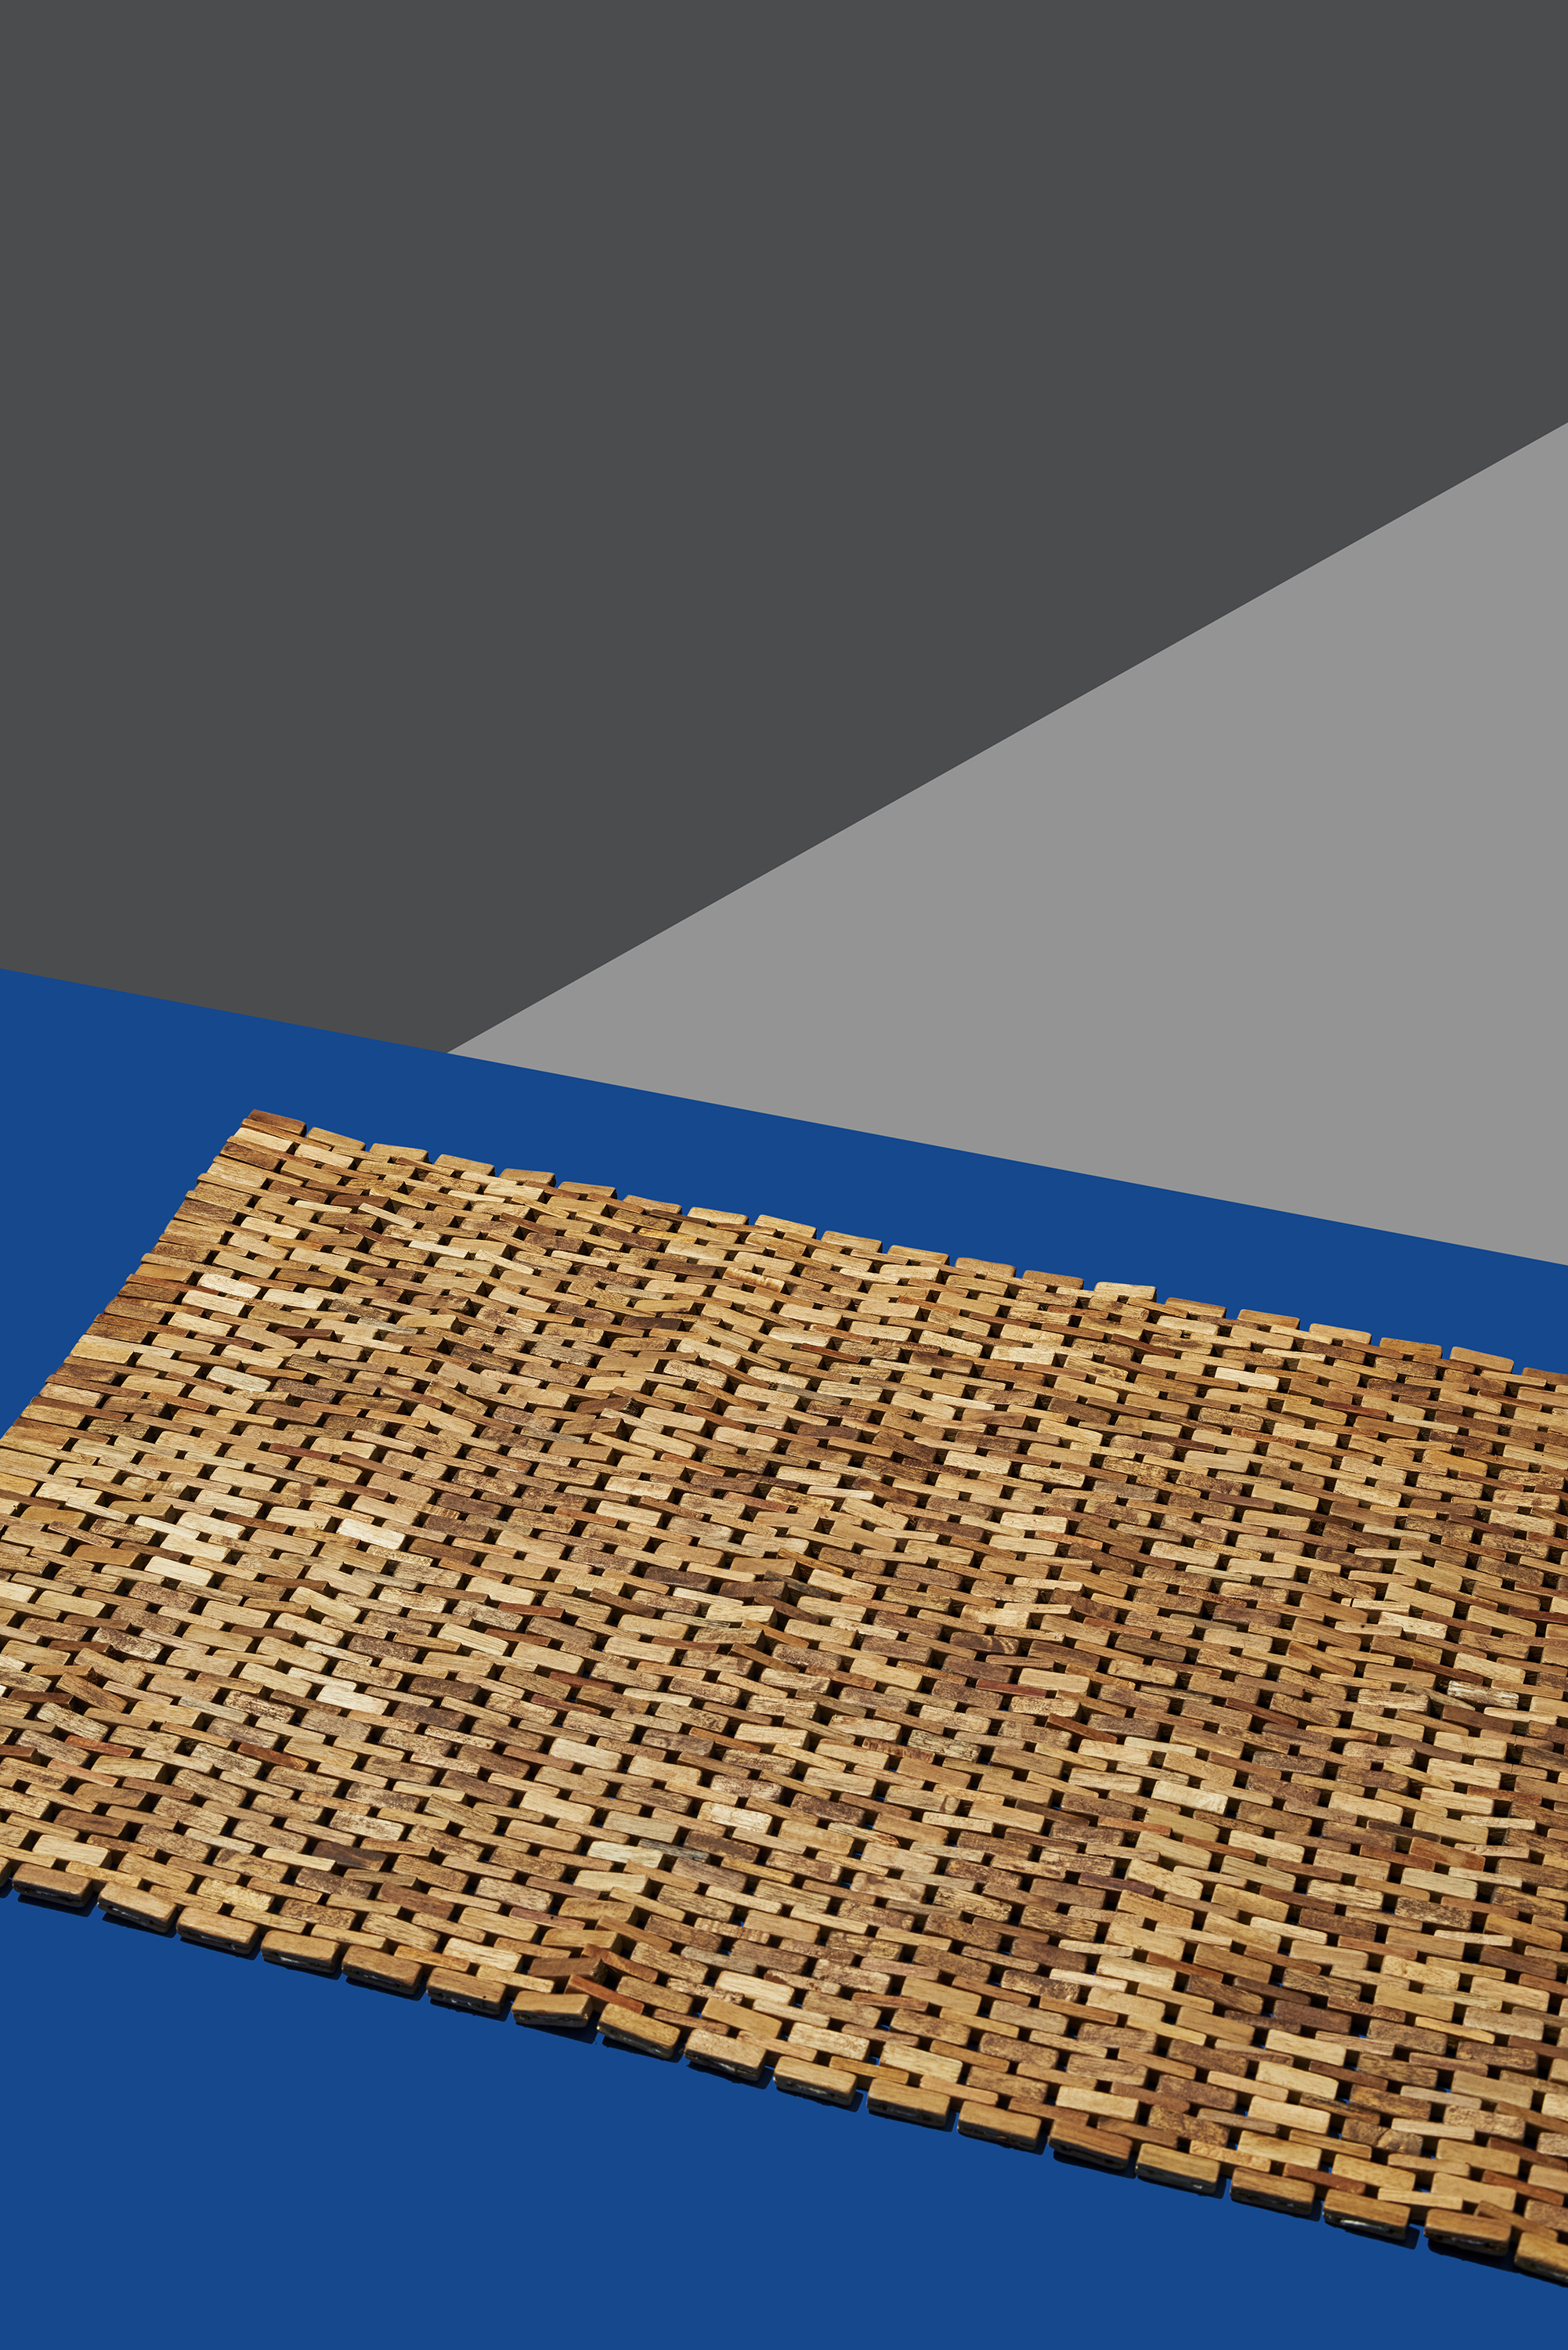 A Woven Wood Bathroom Mat, By Crate And Barrel, On A Blue And